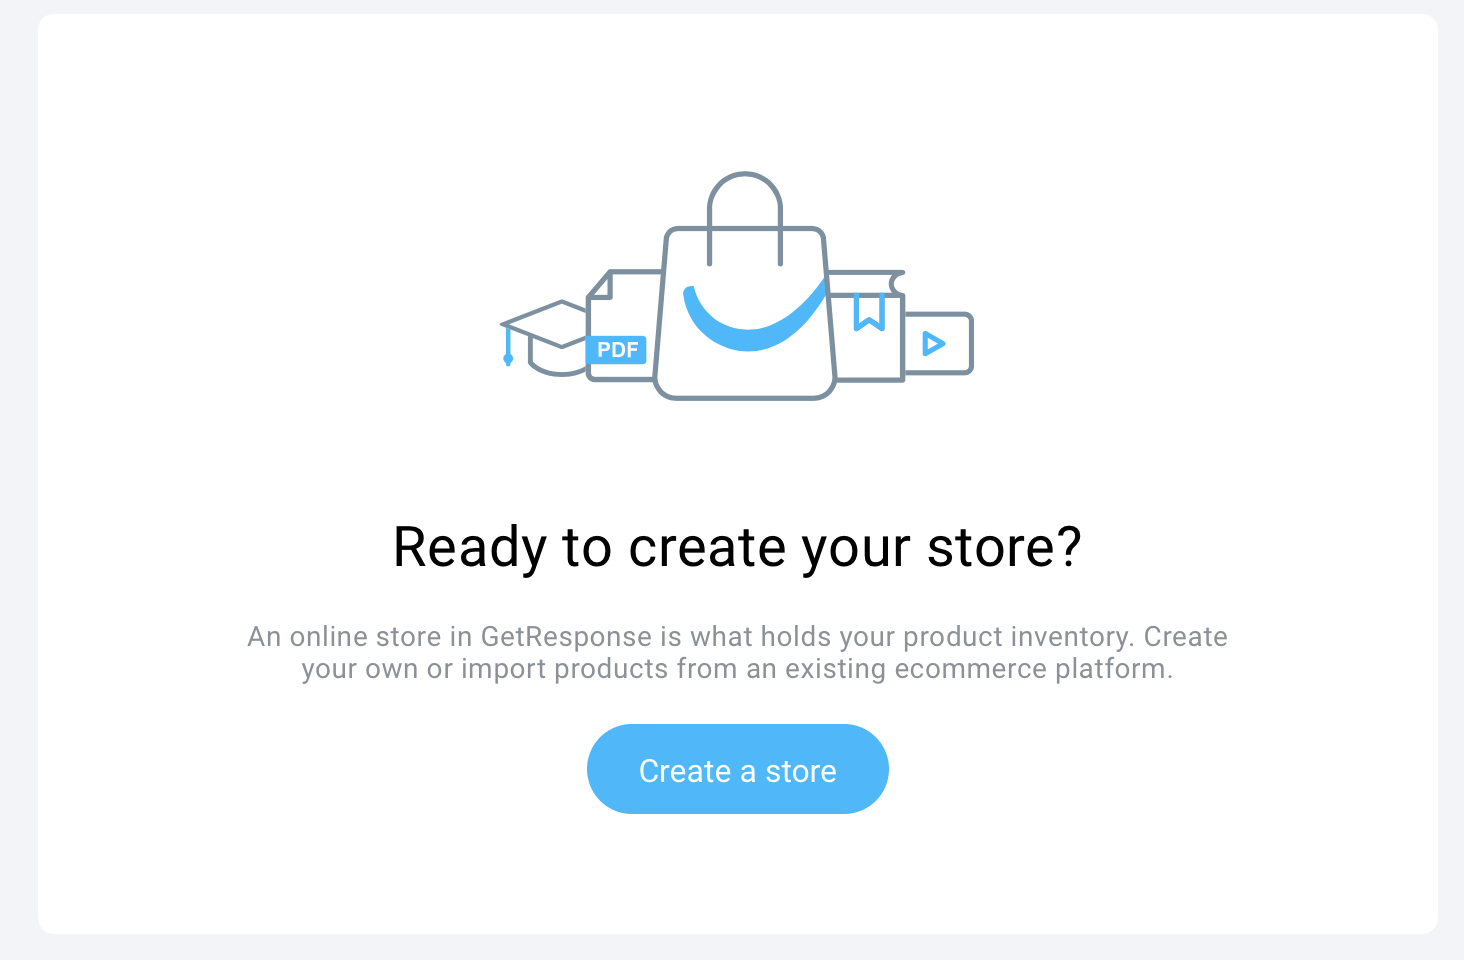 step-3-create-a-store-for-your-product